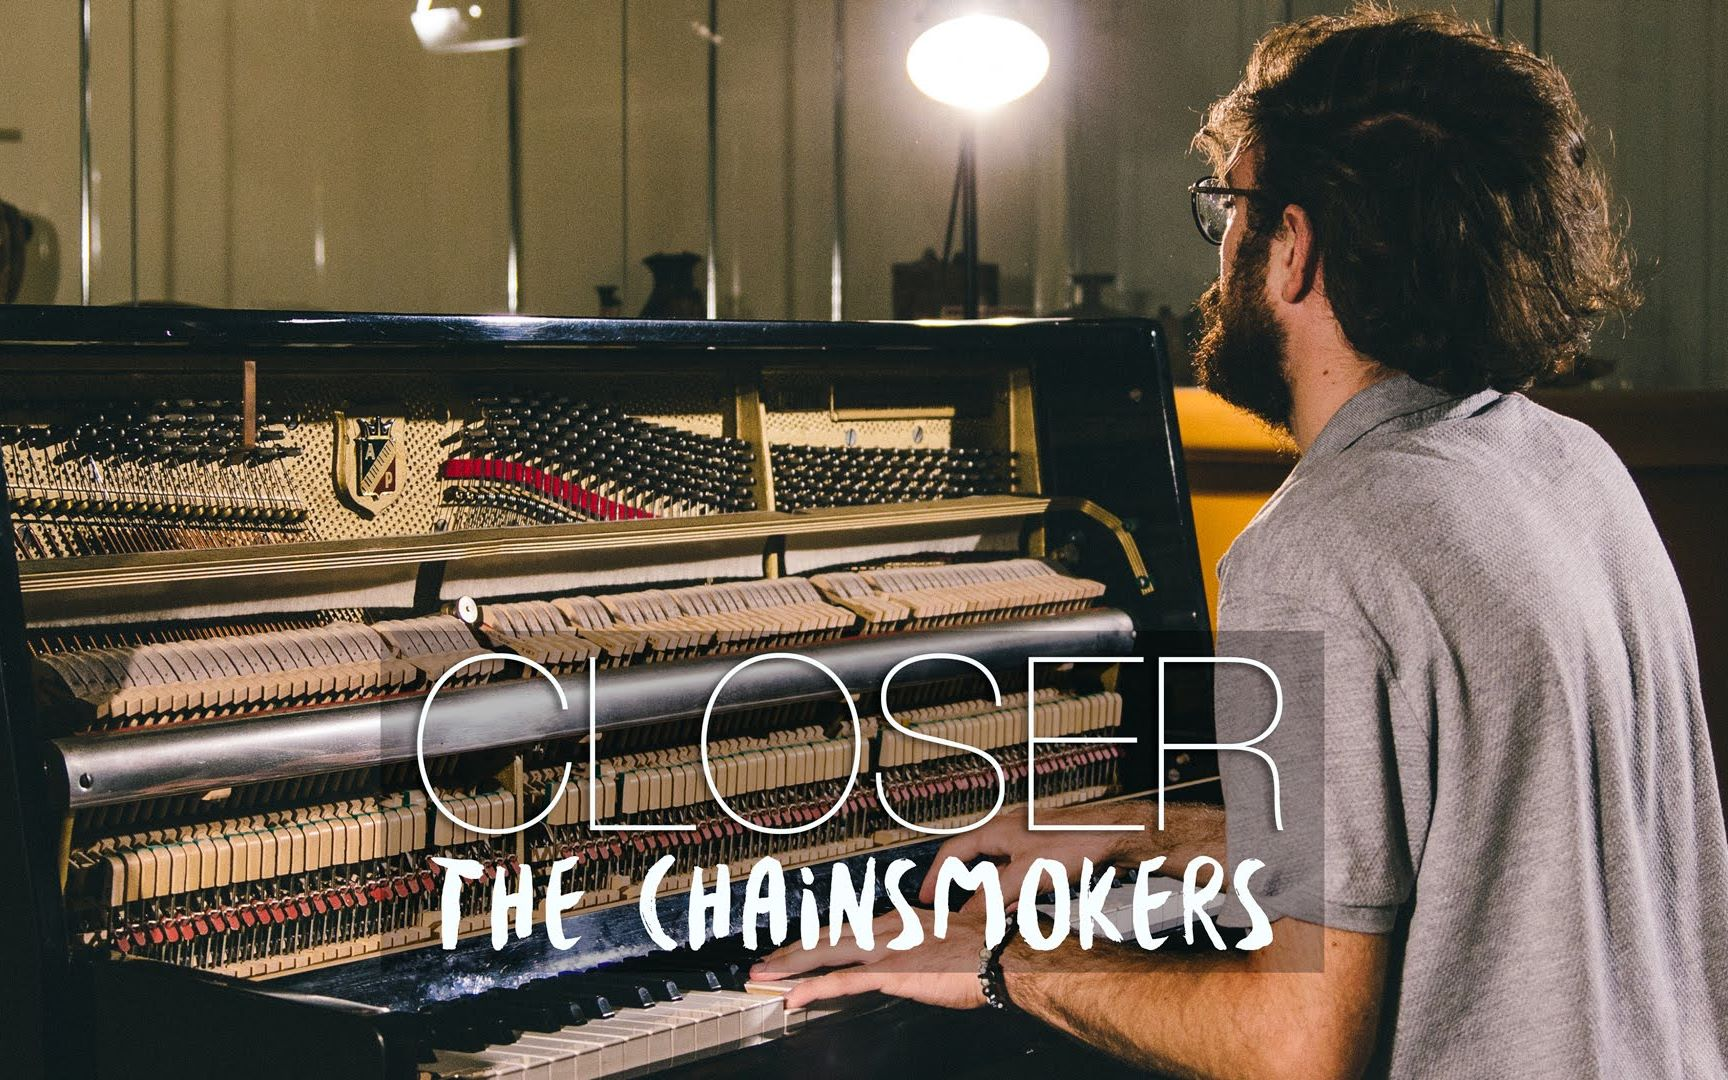 closer 钢琴曲 the chainsmokers 烟鬼 钢琴